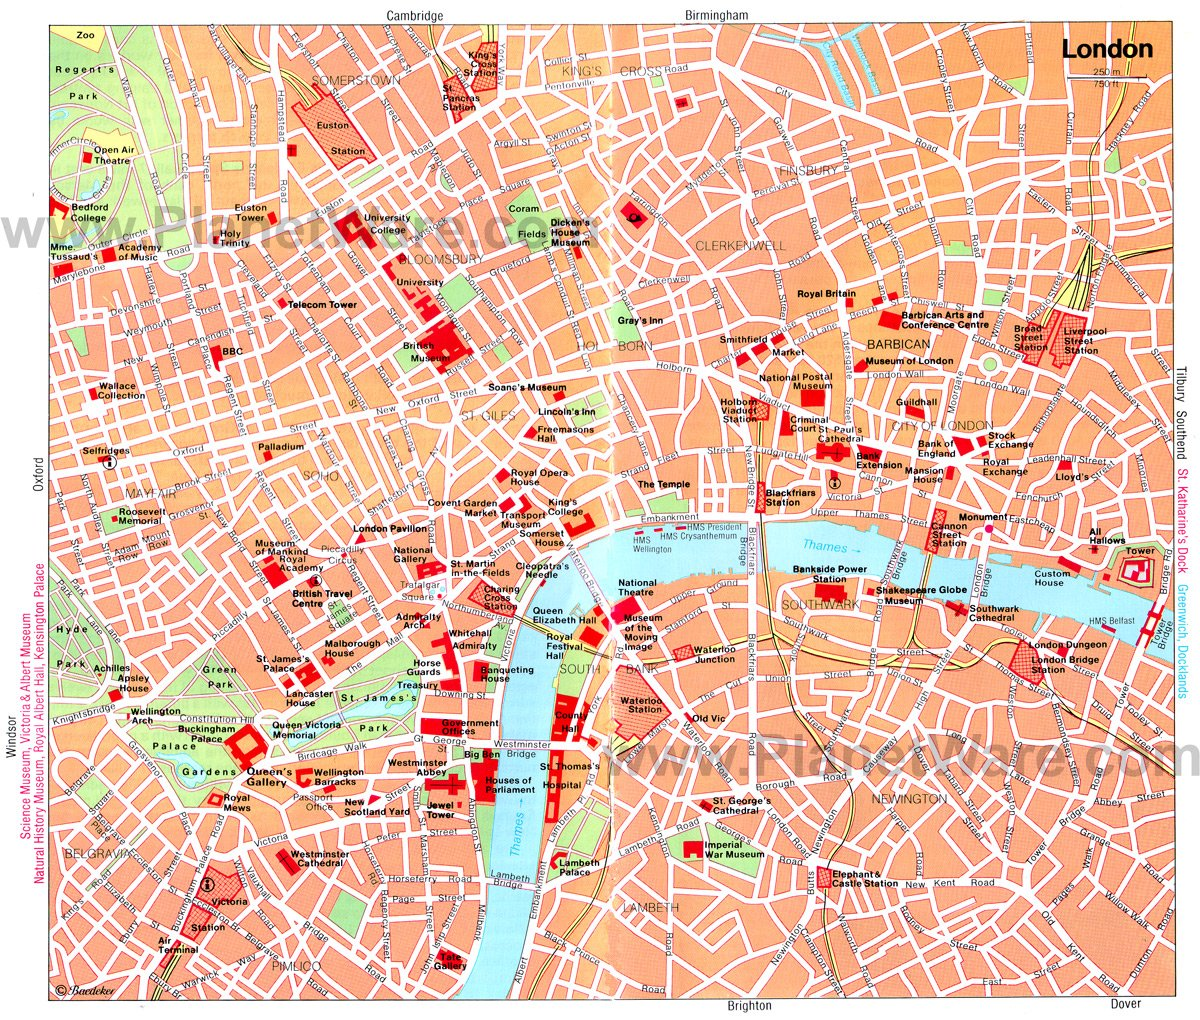 Map Of London With Famous Landmarks.17 Top Rated Tourist Attractions In London Planetware